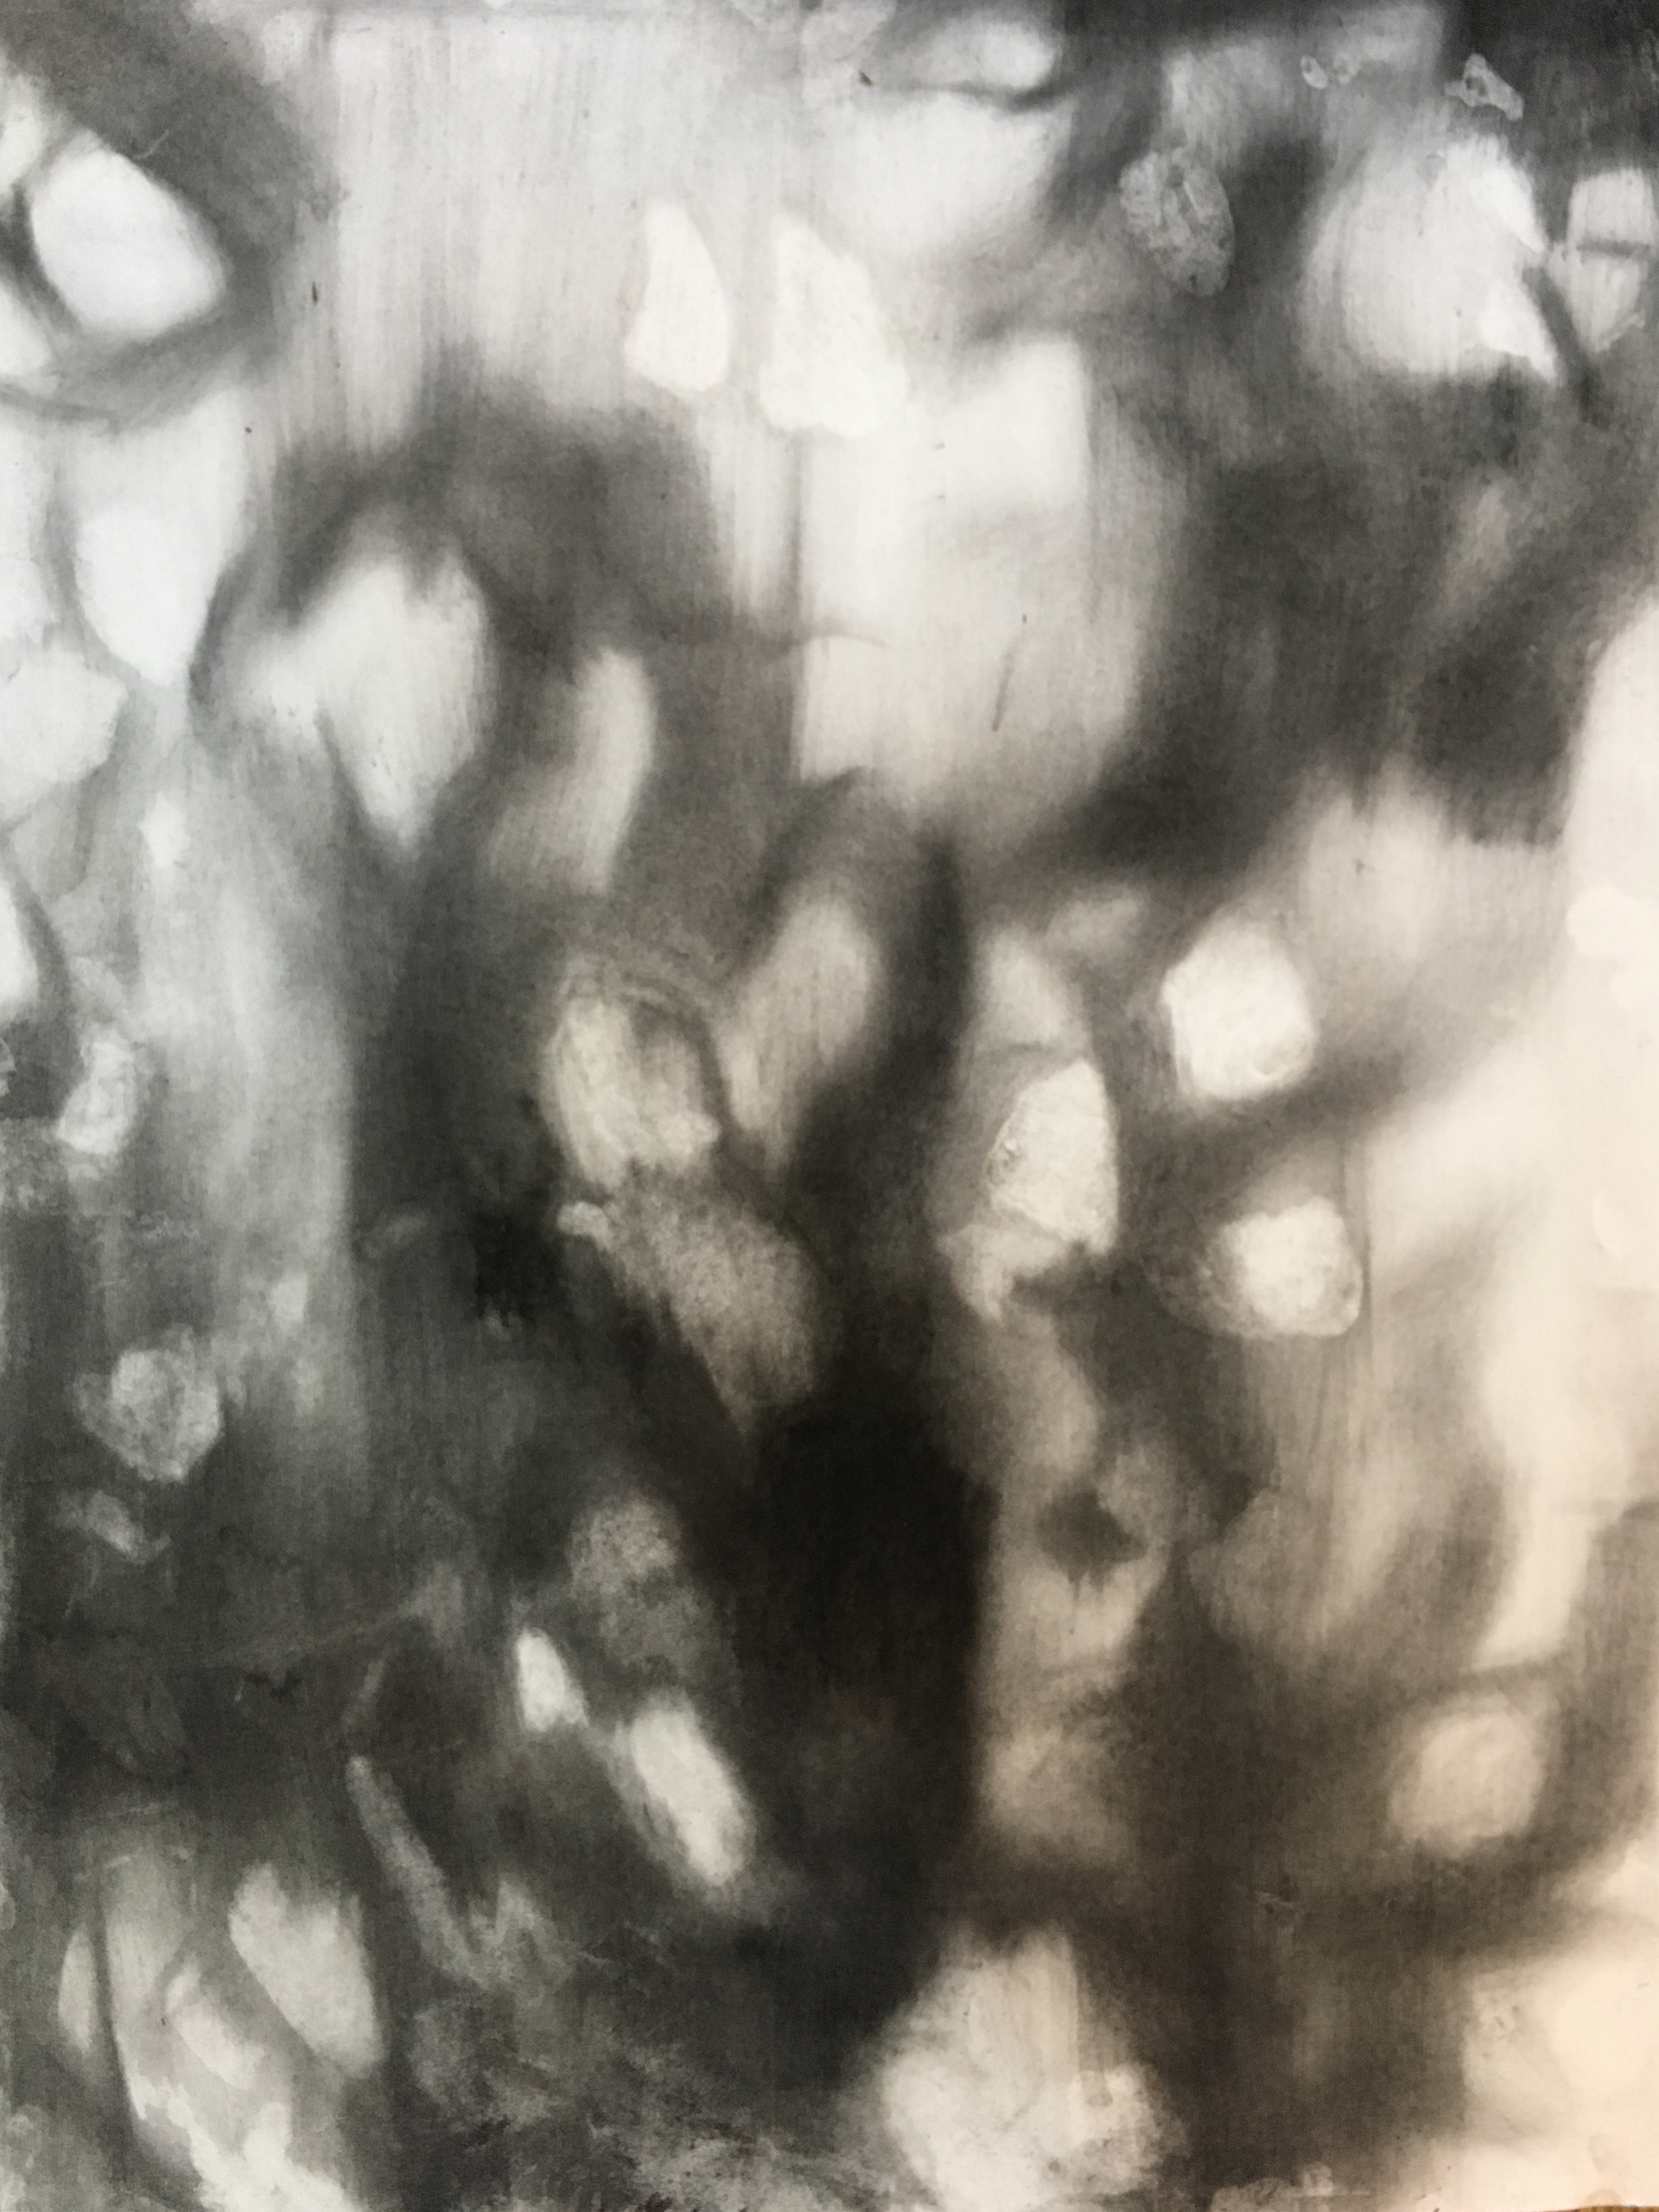 ONDER DIE BOME 2019 Charcoal on cotton paper 65 x 50cm